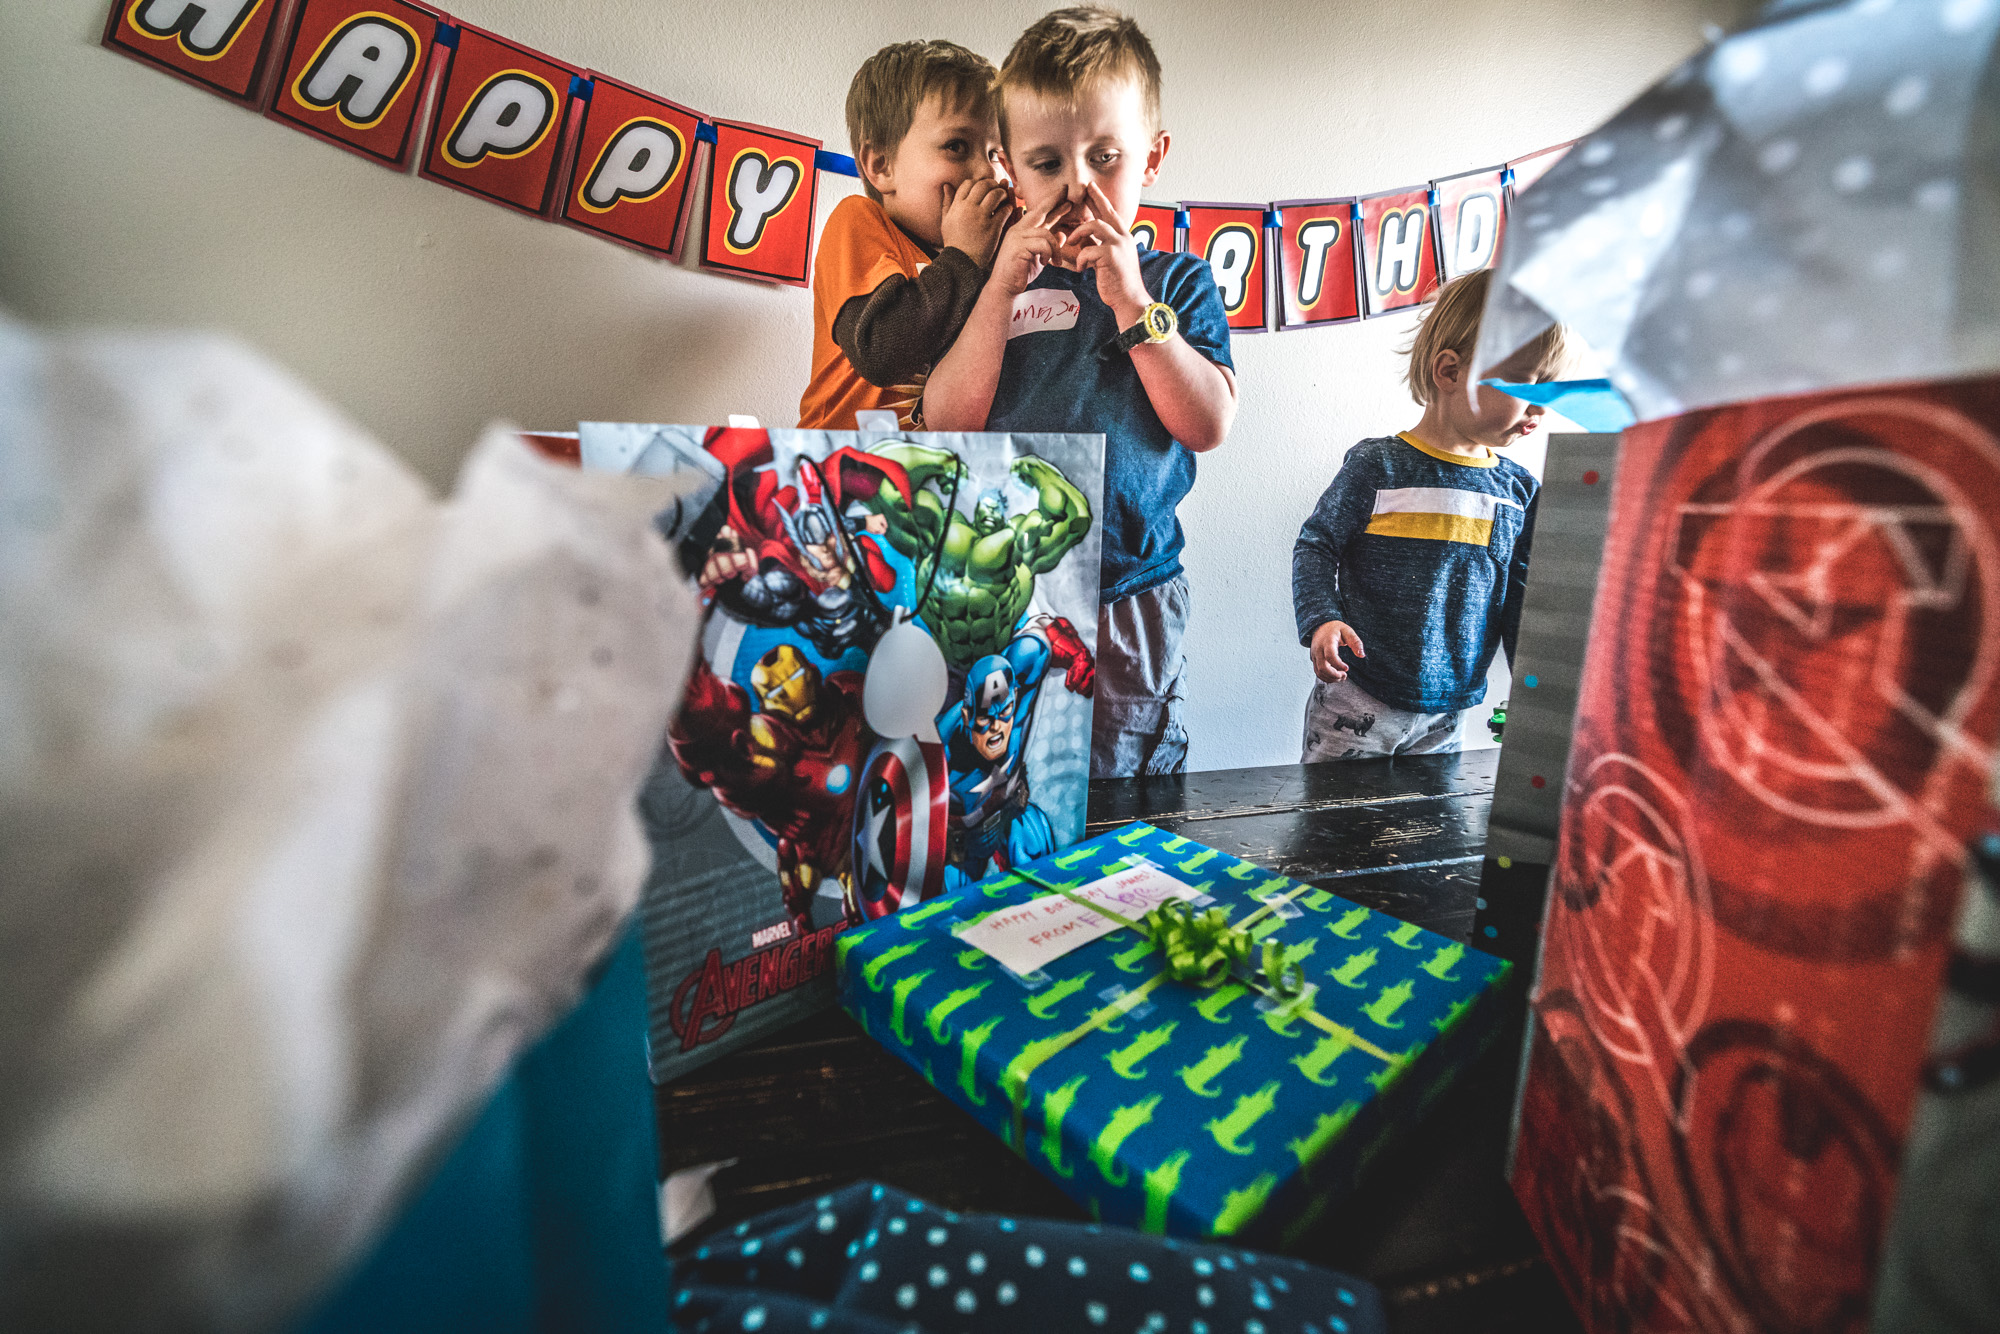 Photo of two little boys surrounded by colorful birthday presents as one little boy whispers to the other